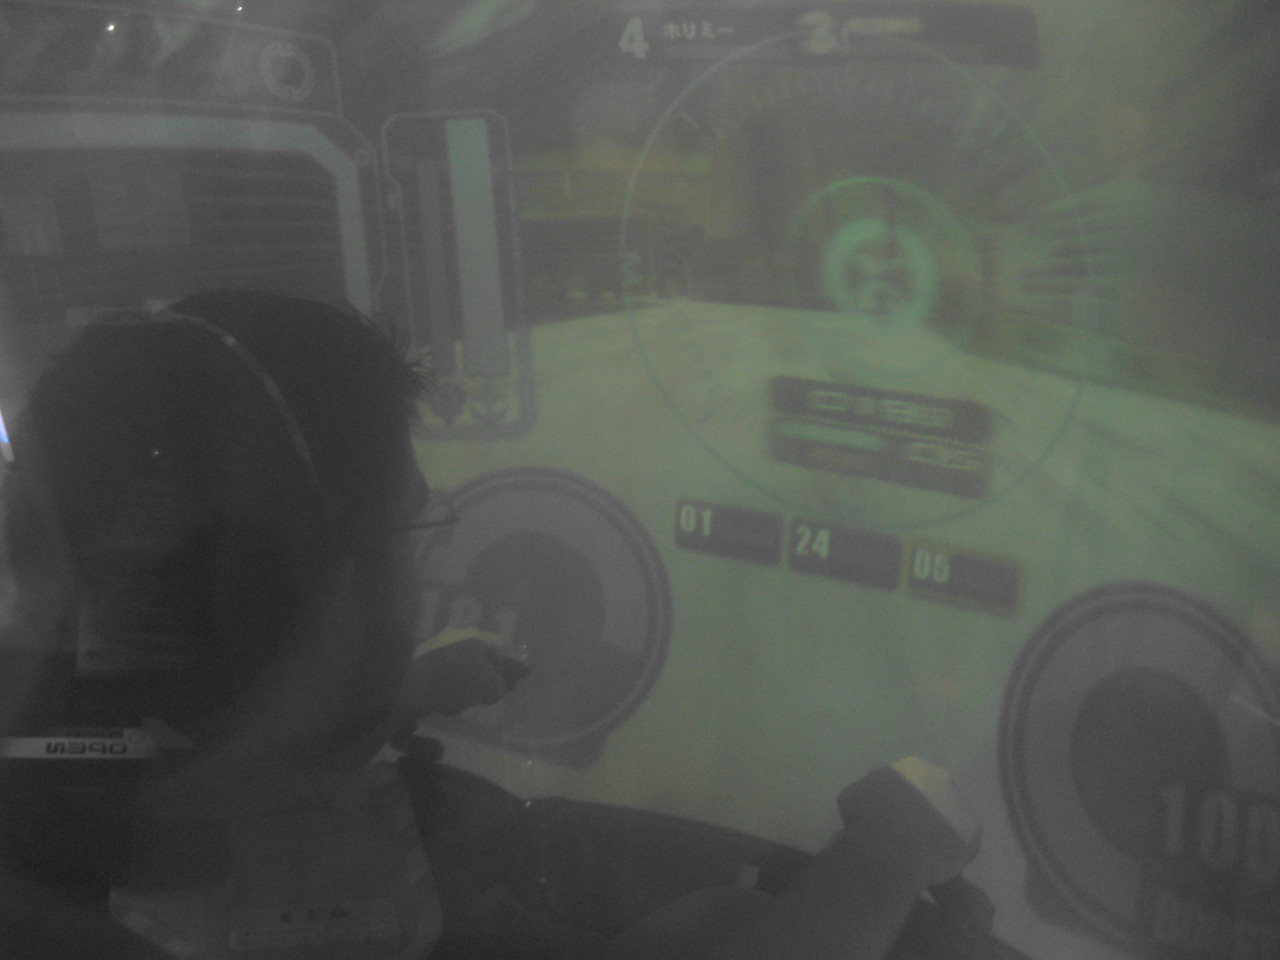 A view through the tinted shell as Josh manipulates this tank.